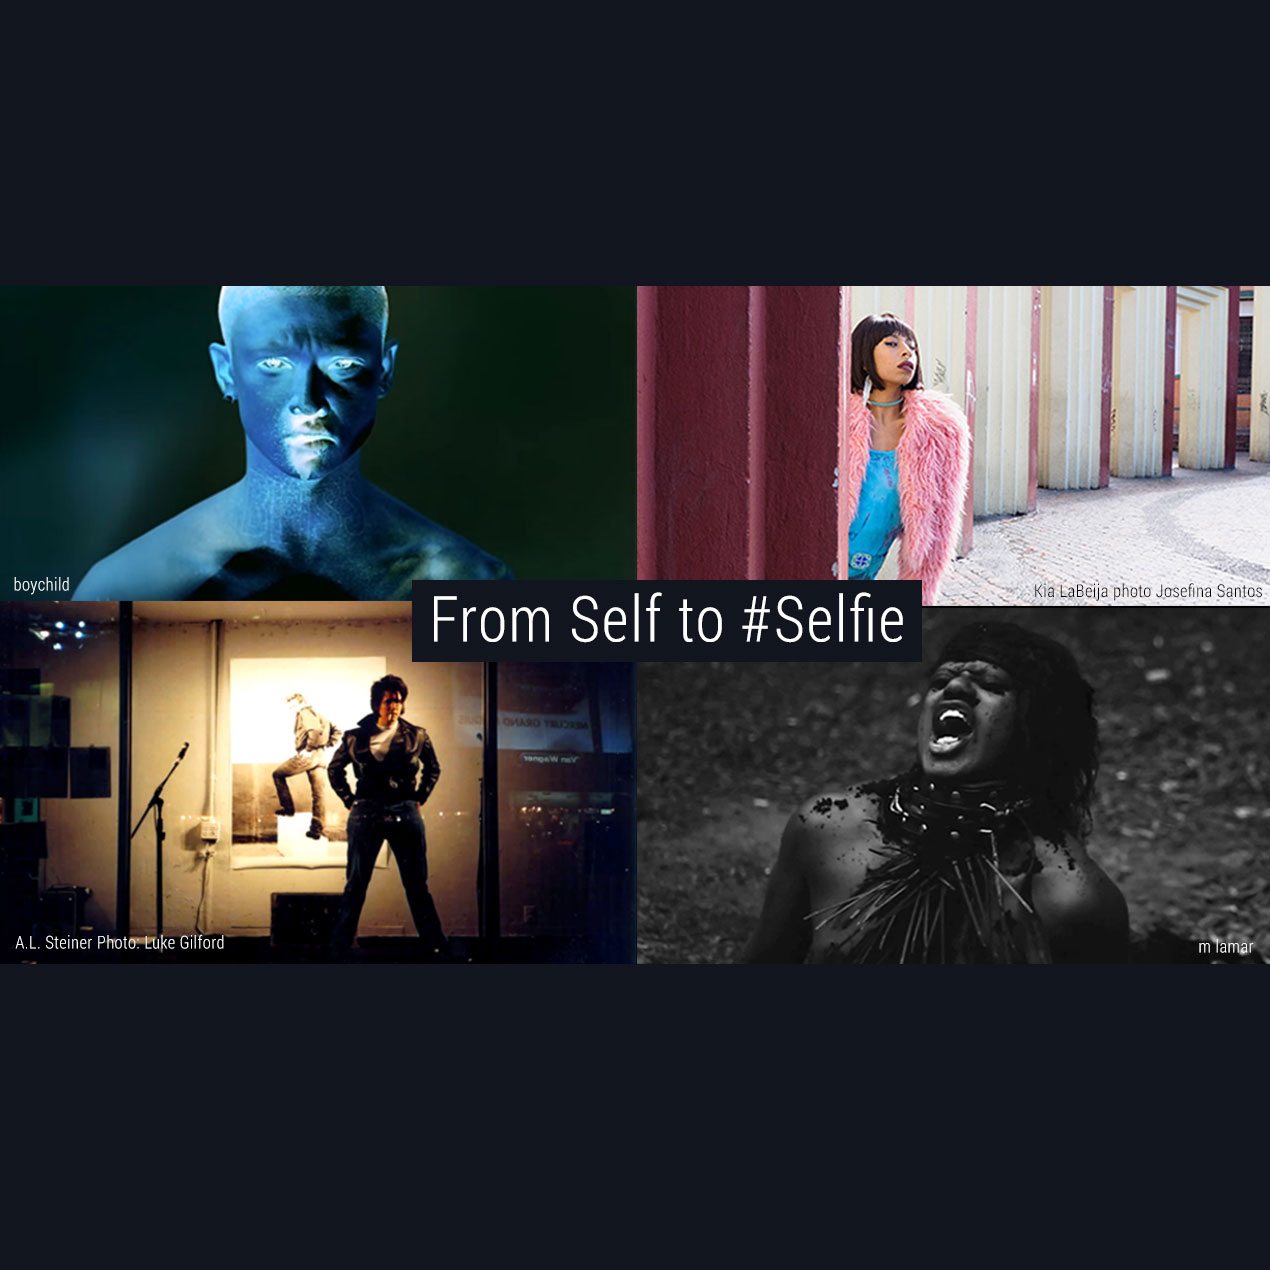 From Self to Selfie